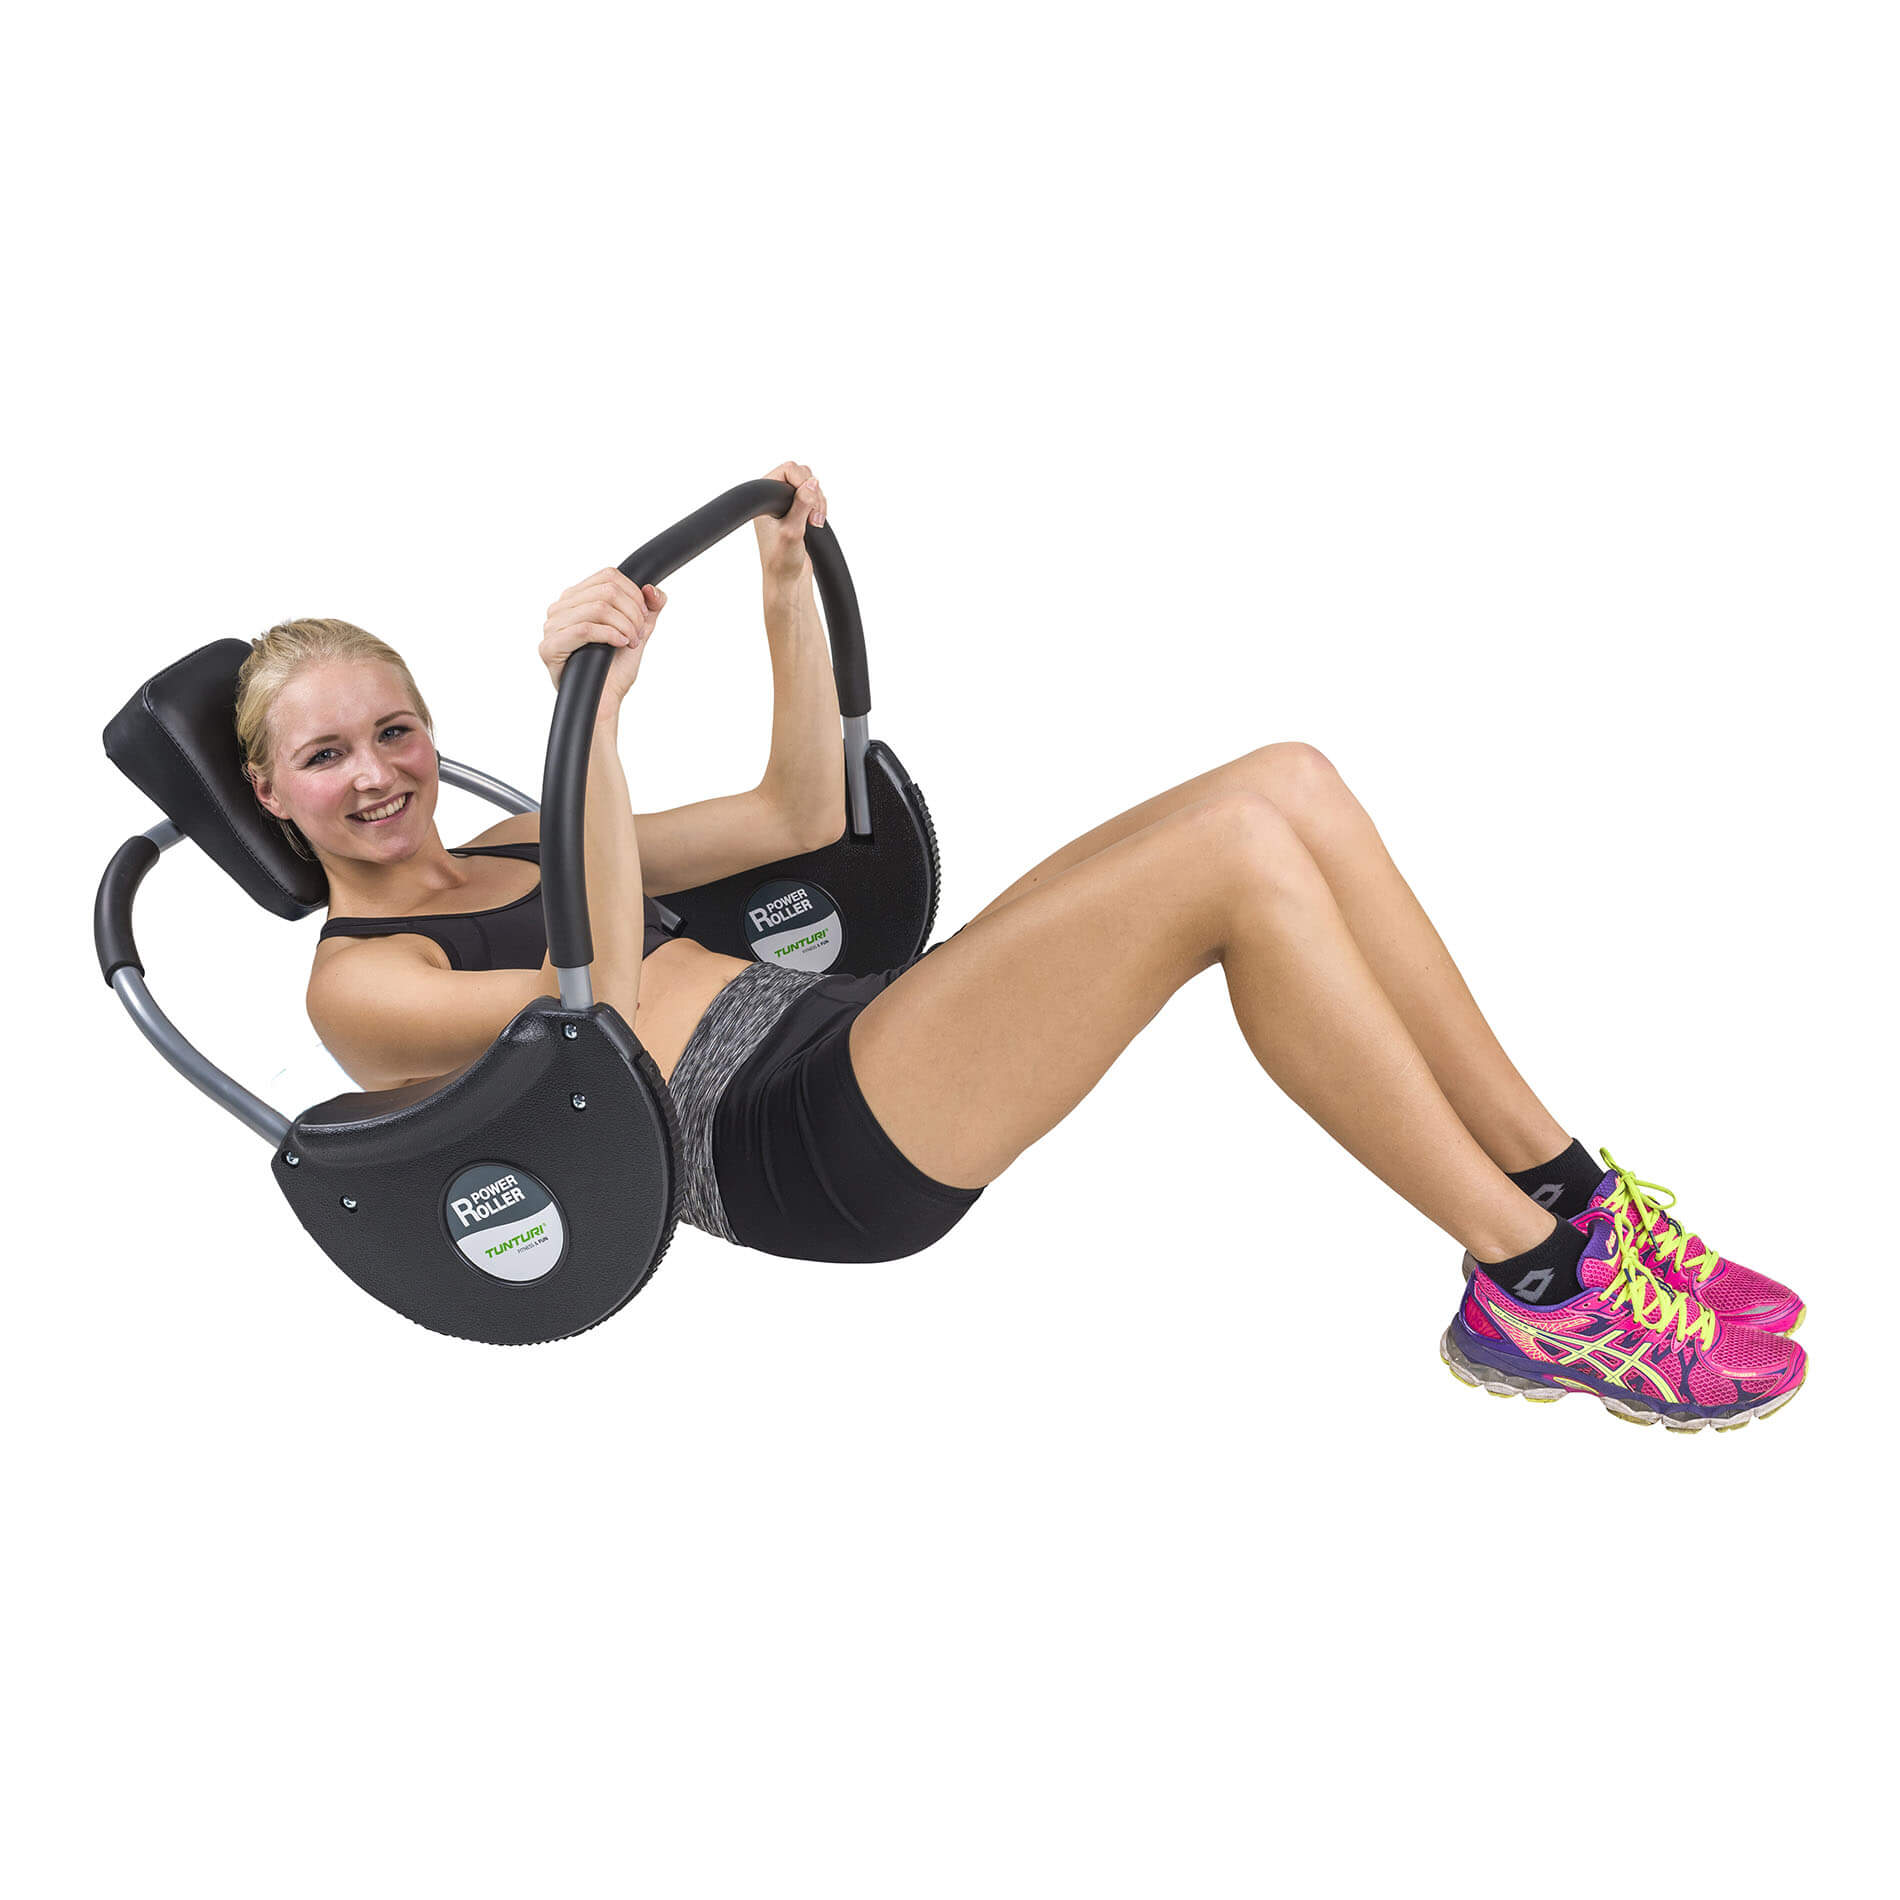 Power Roller - Buikspier Trainer -Buikspiertrainer- Abtrainer